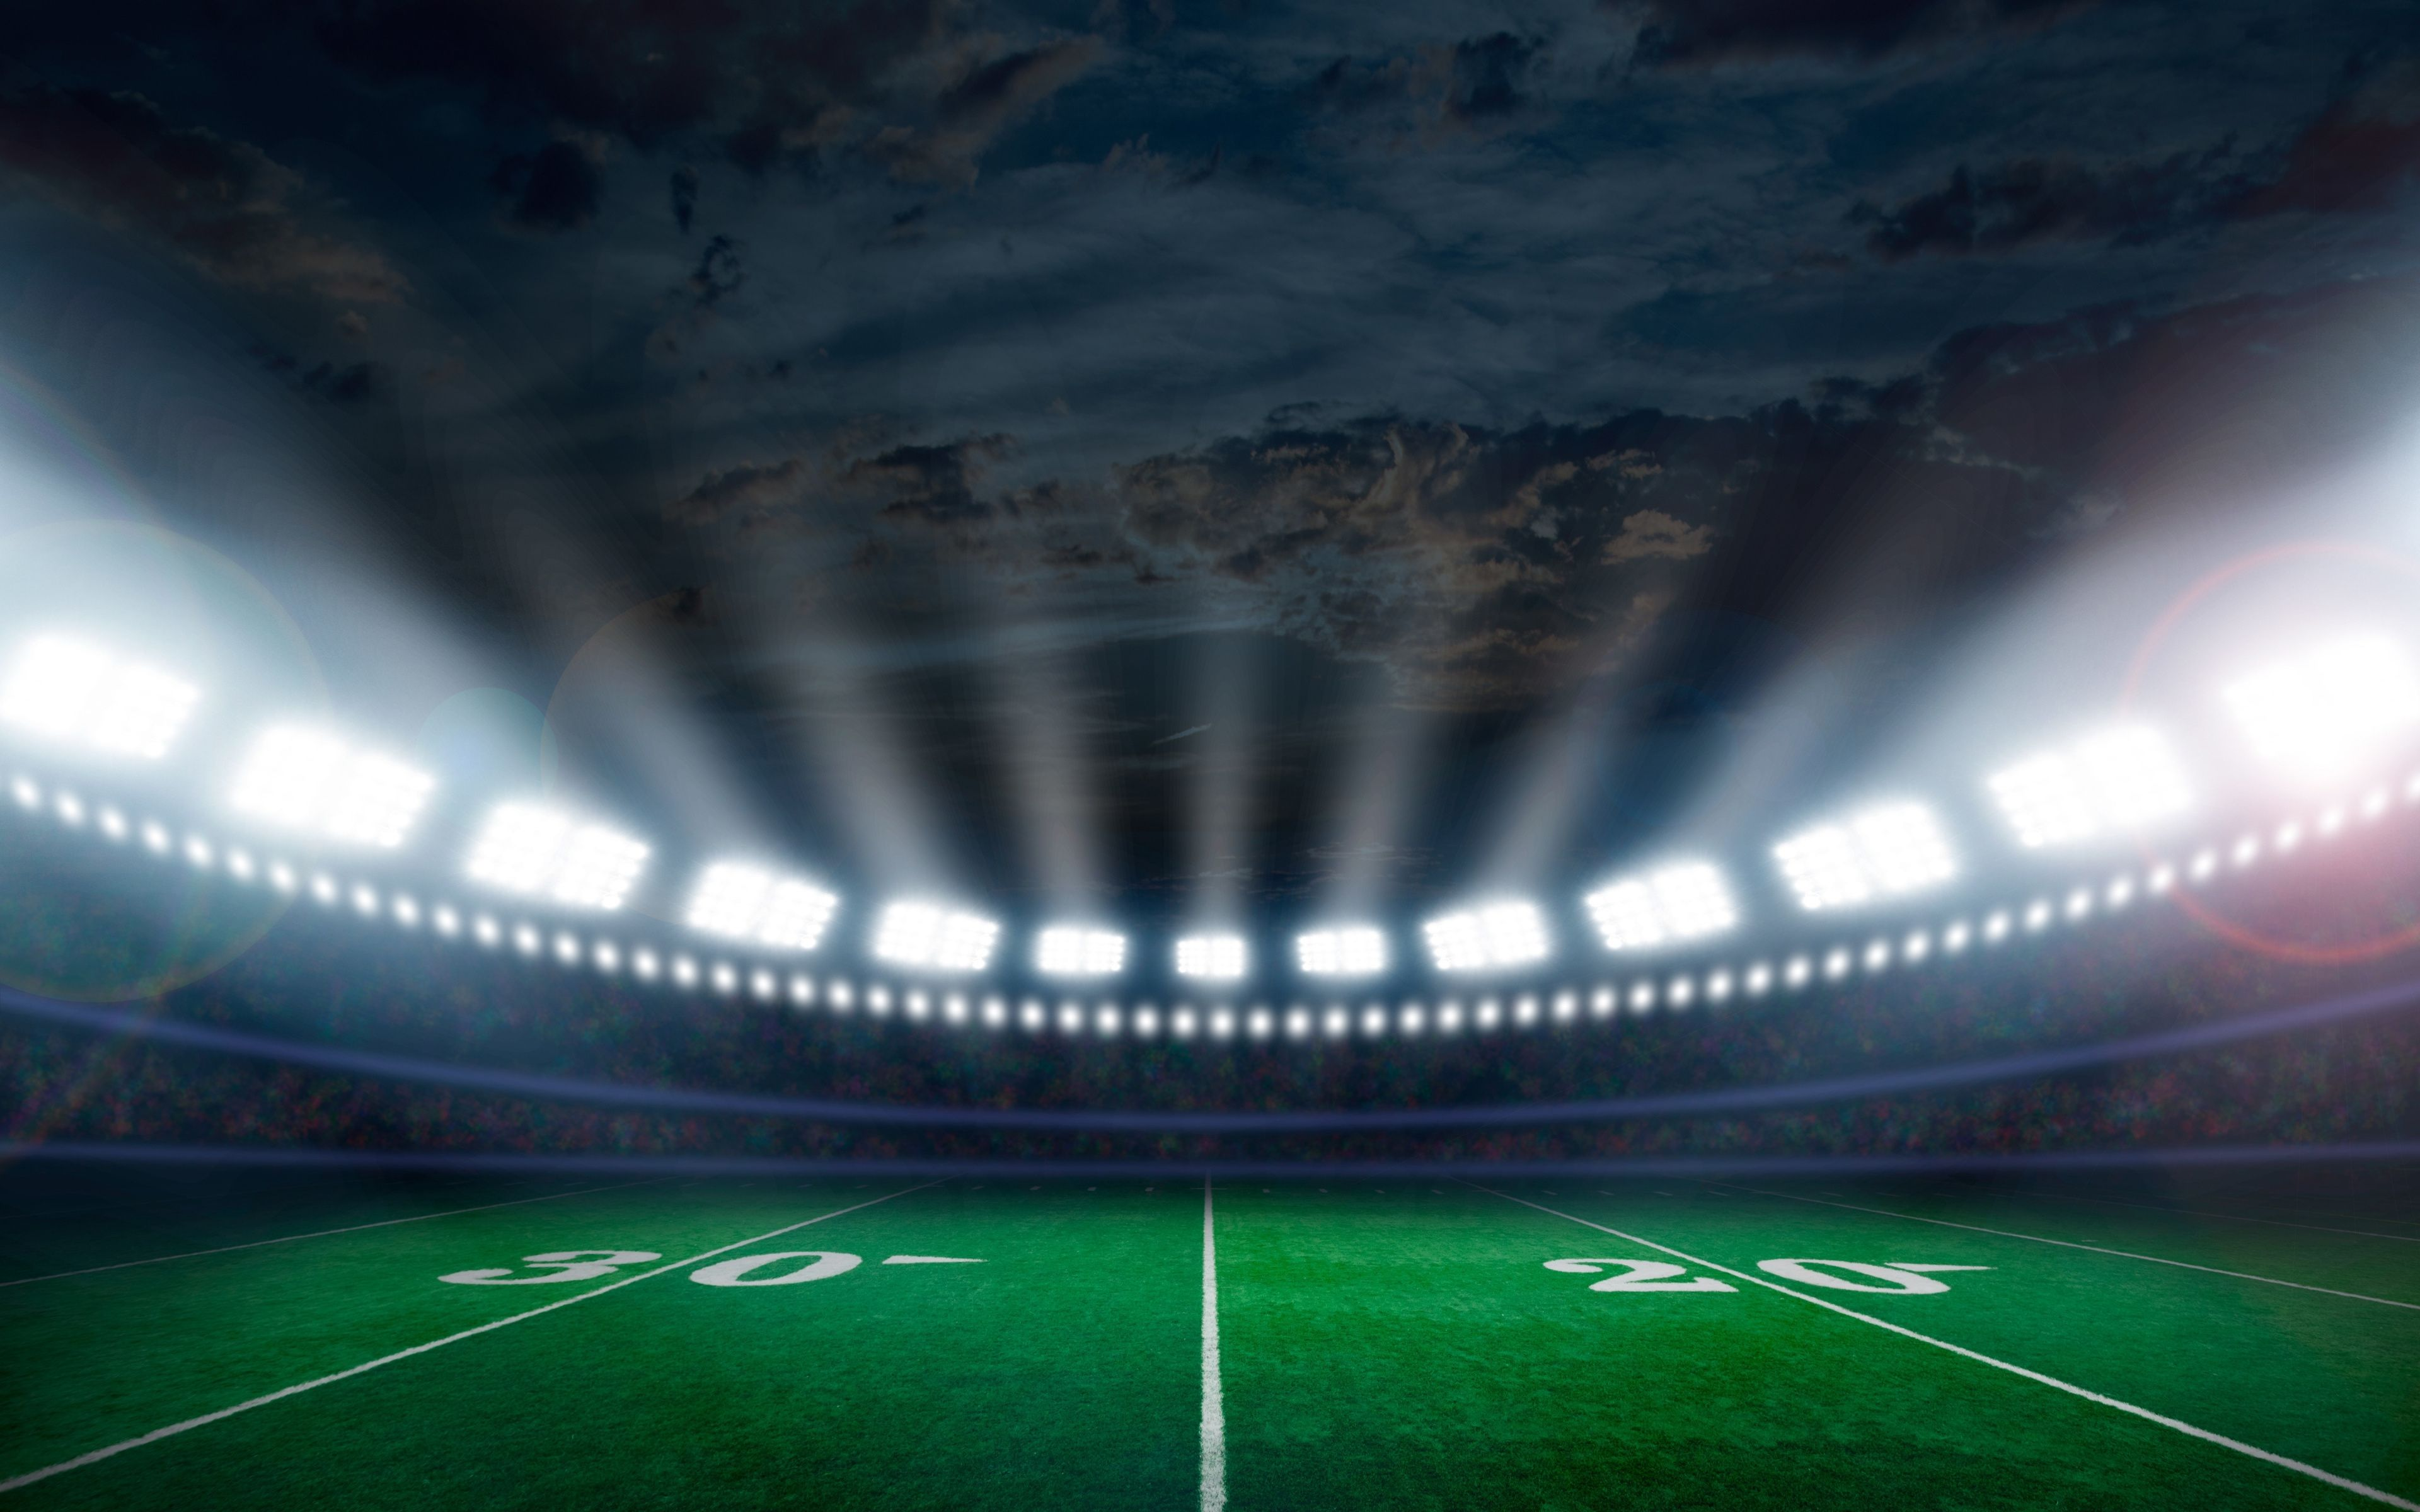 stadium 4k sport wallpapers top free stadium 4k sport backgrounds wallpaperaccess stadium 4k sport wallpapers top free